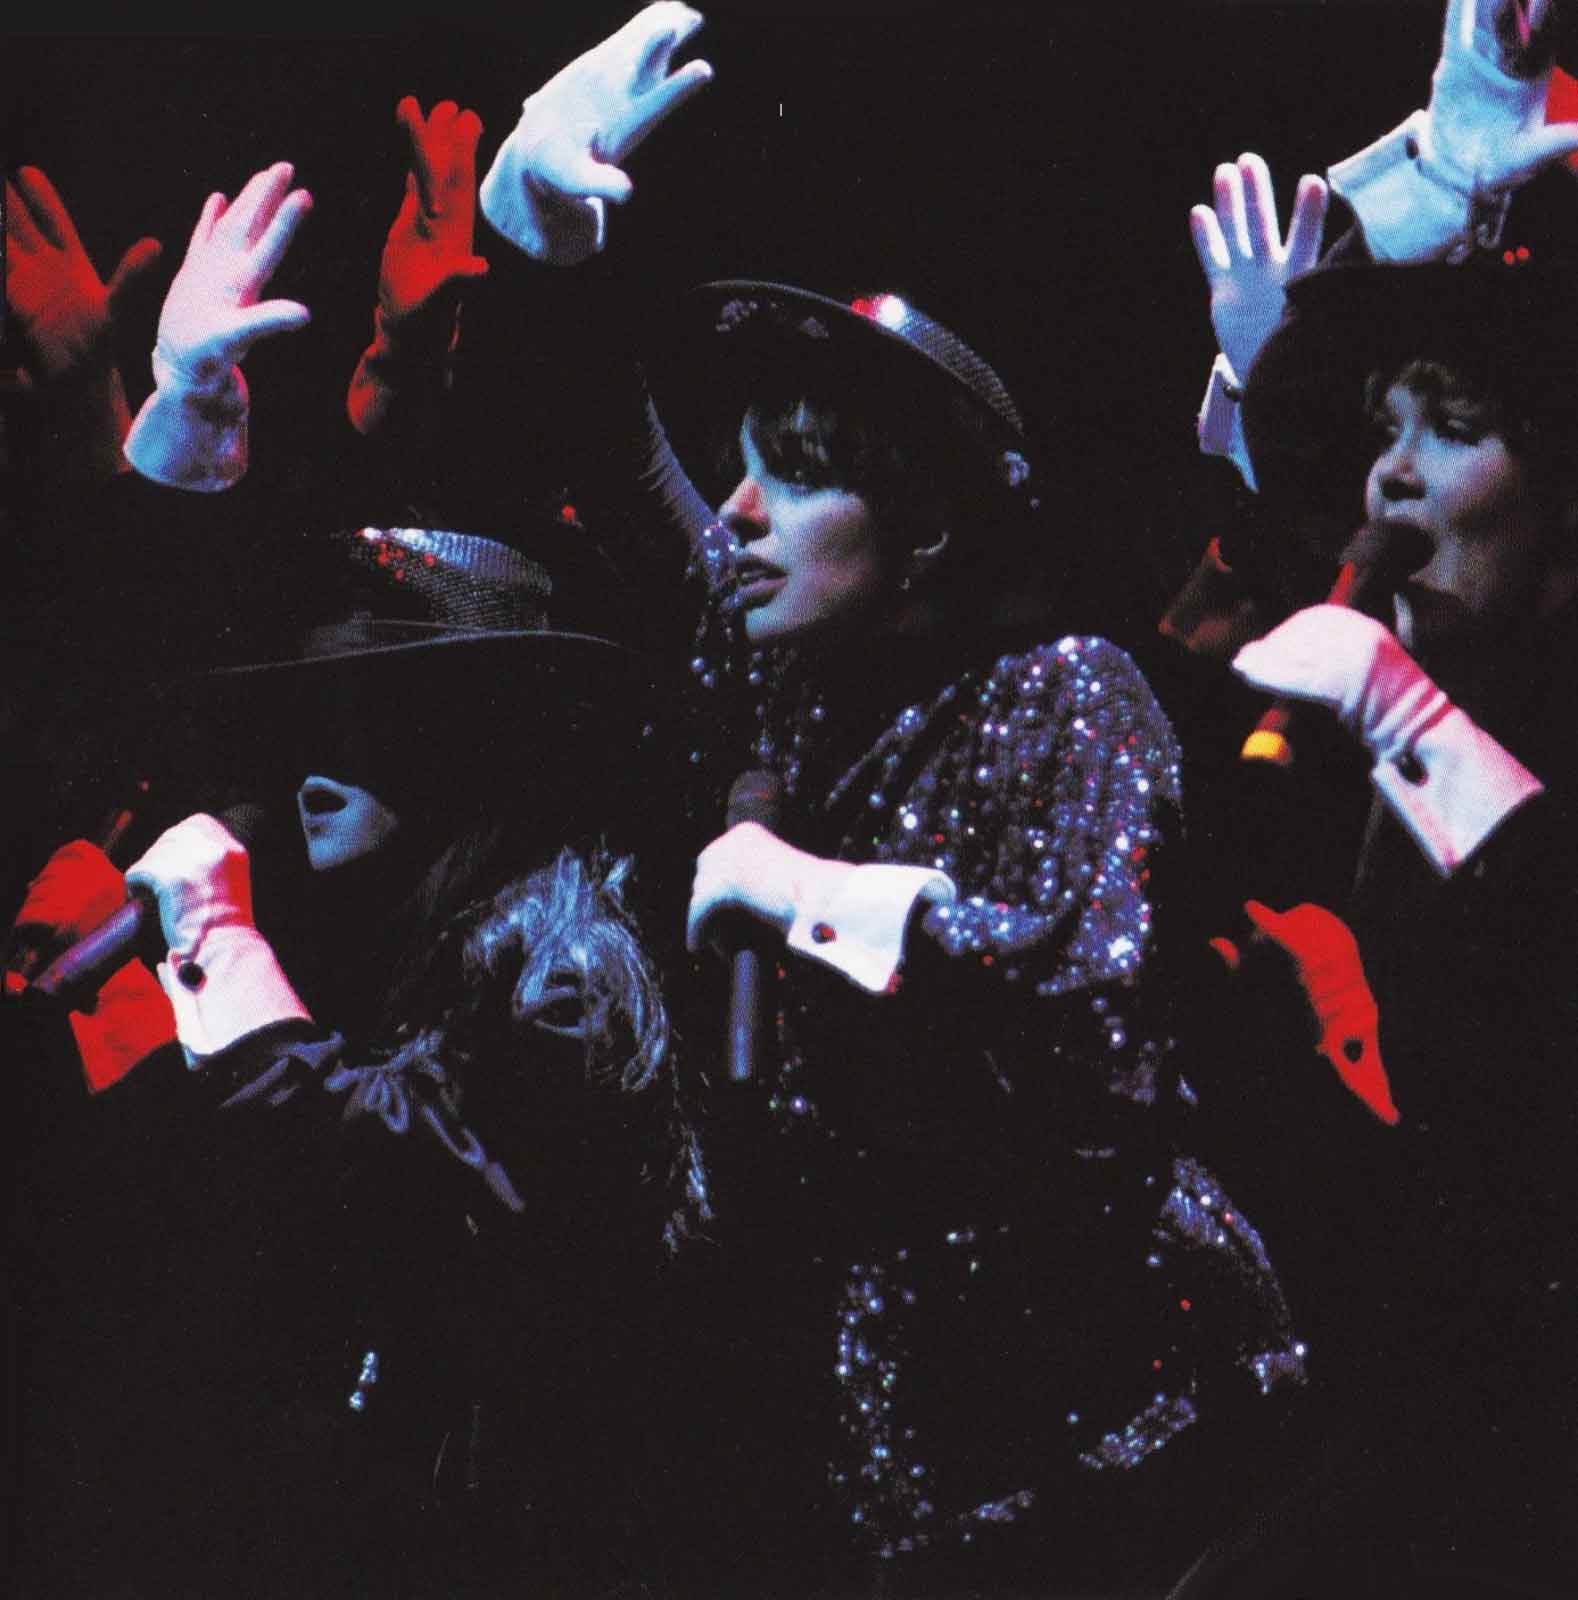 Liza and the Demon Divas, wearing white gloves and black sequined outfits.